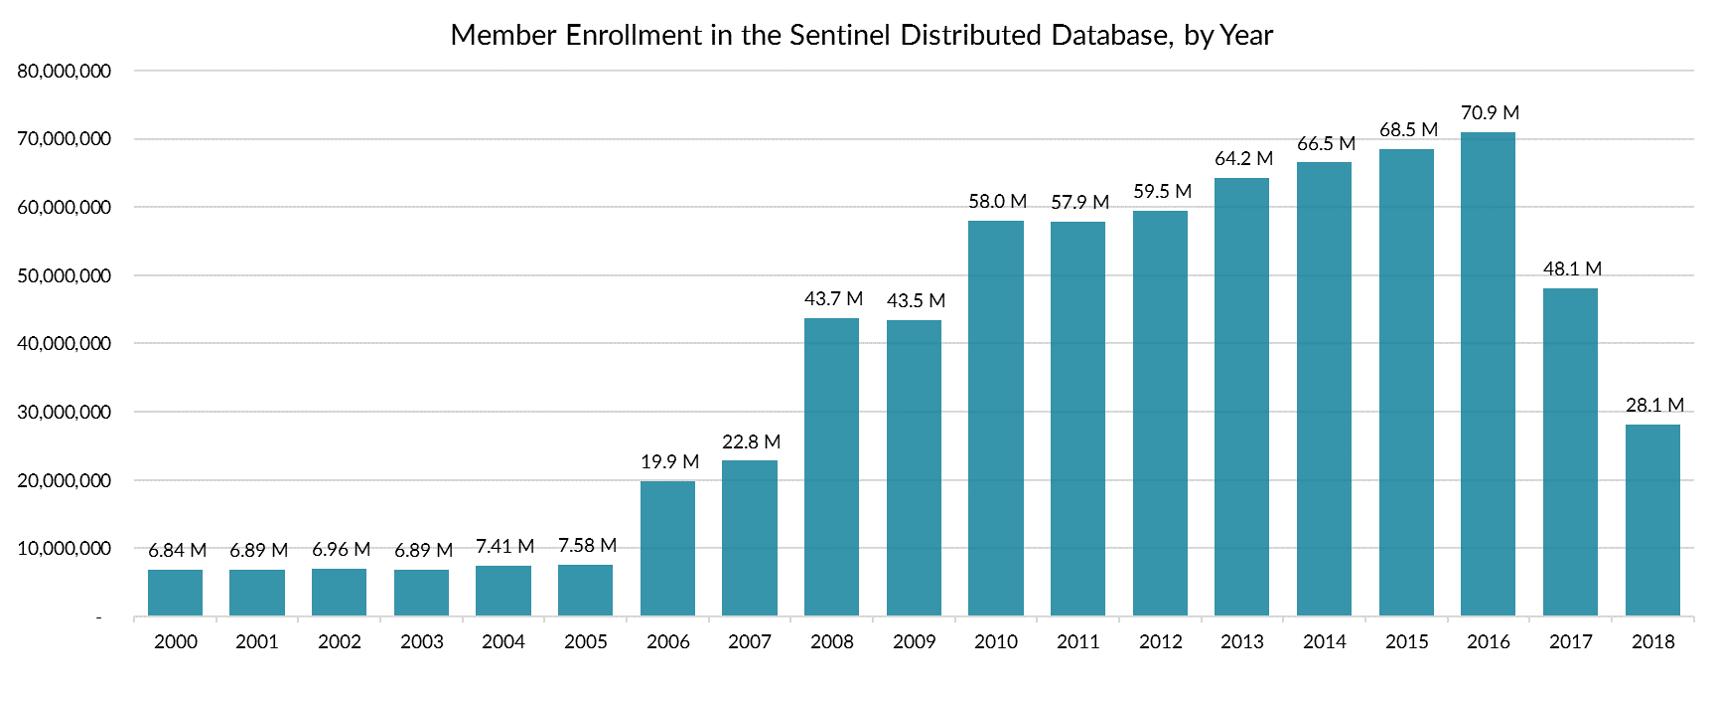 Member Enrollment in the Sentinel Distributed Database, by Year